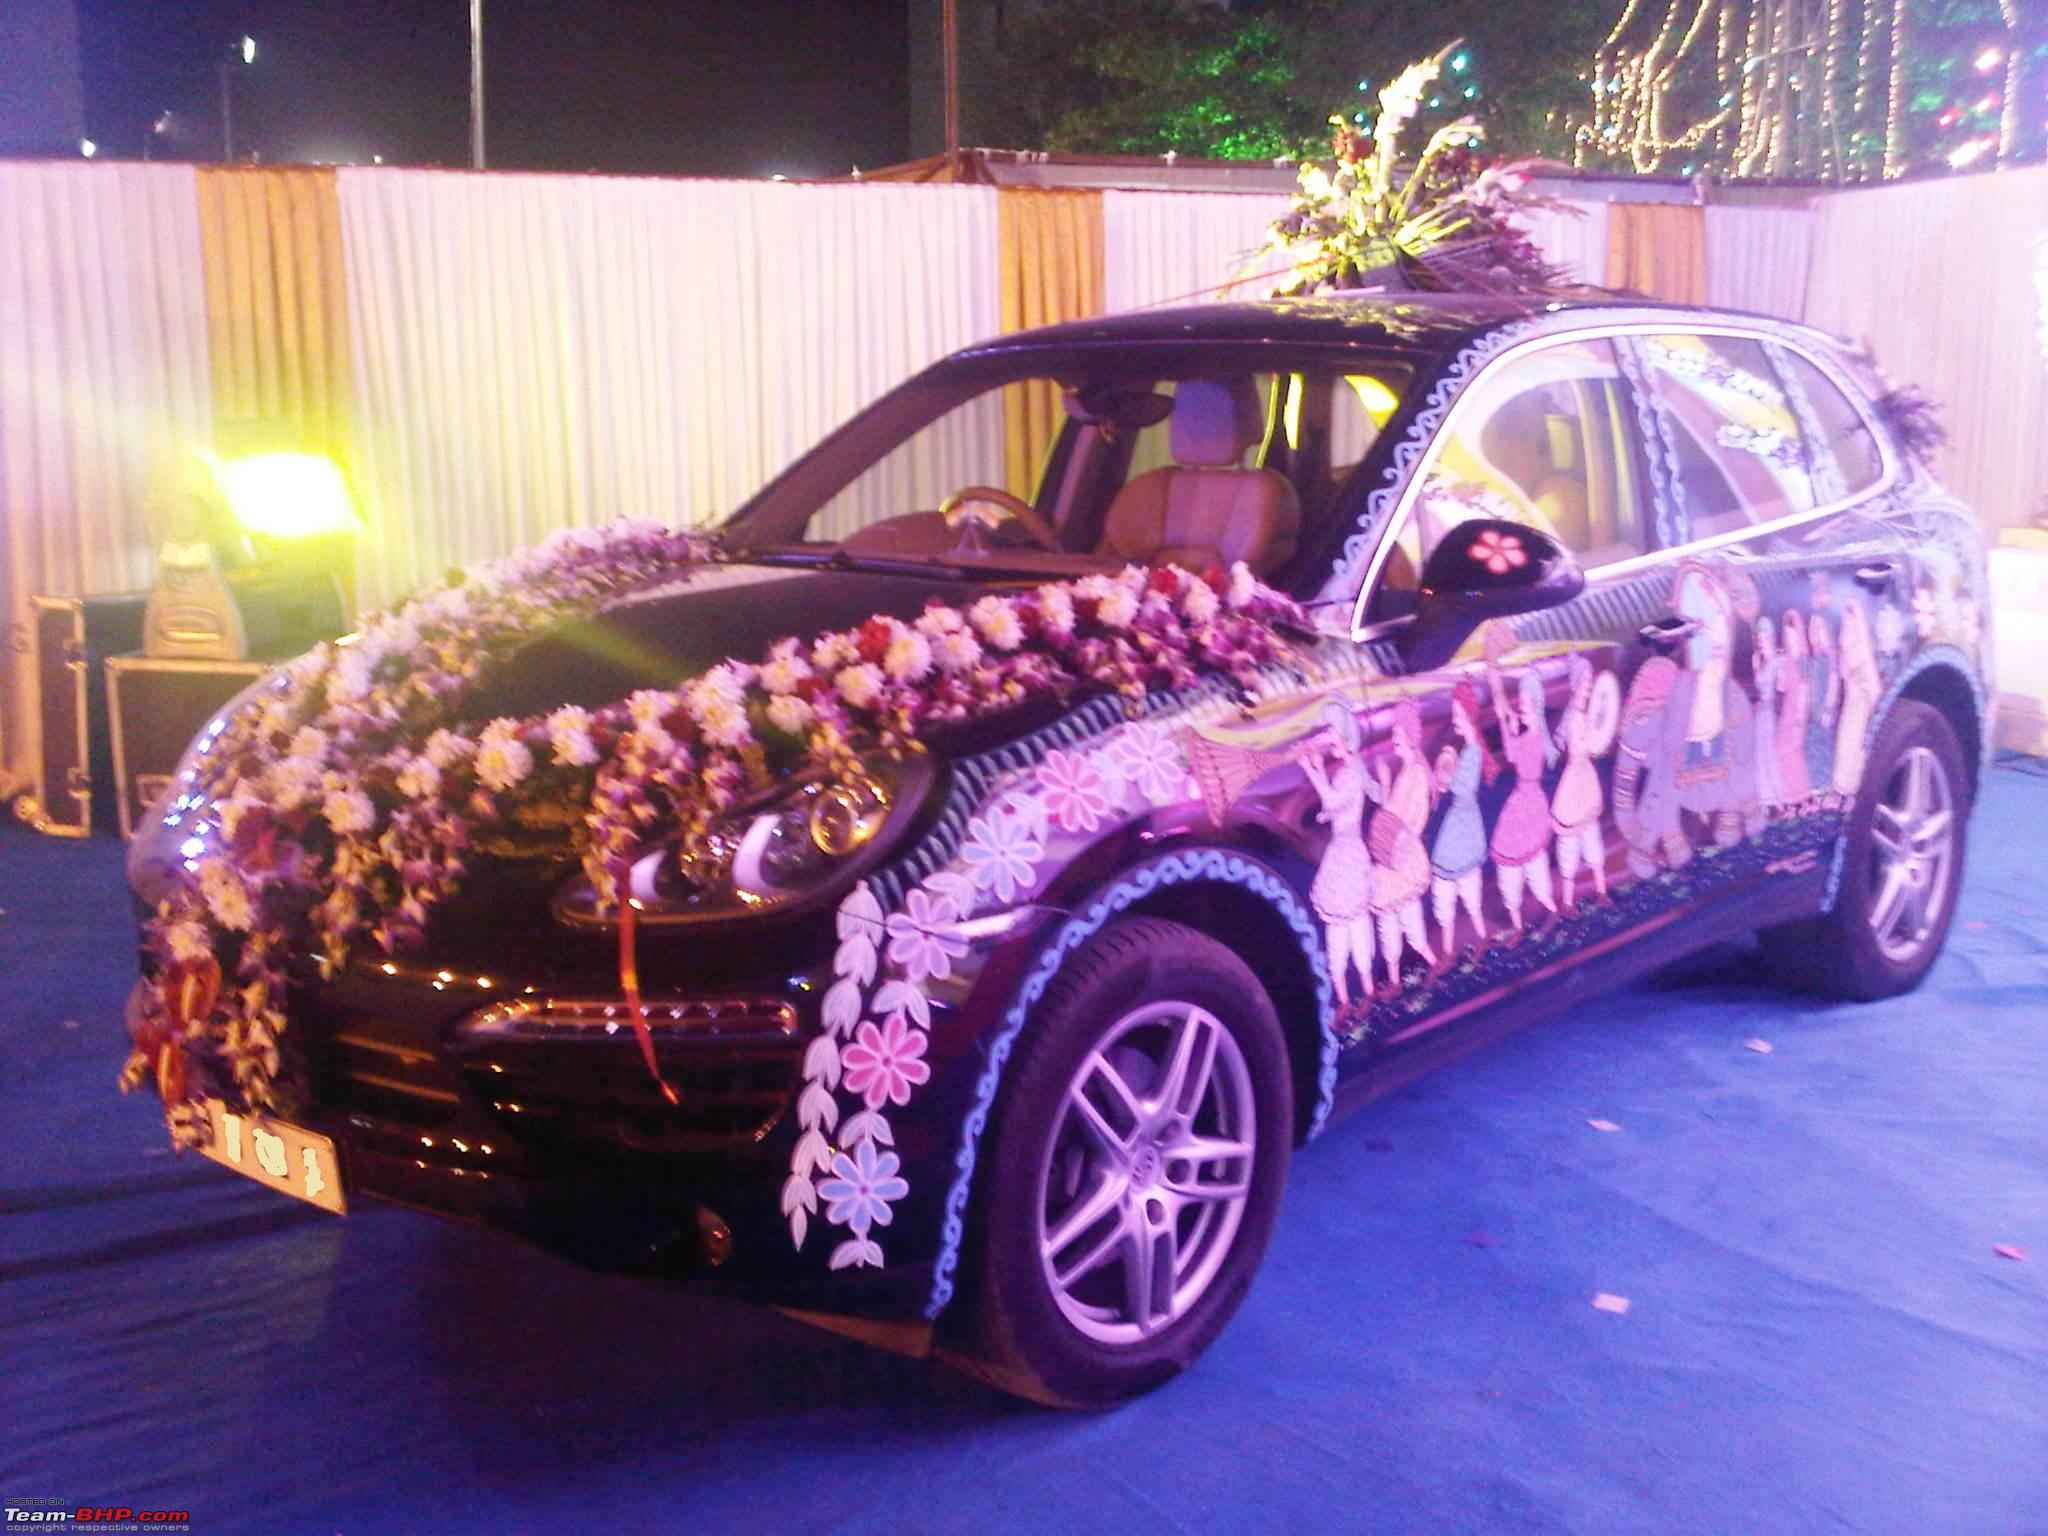 89 CAR DECORATION FOR HINDU WEDDING, FOR WEDDING DECORATION CAR HINDU